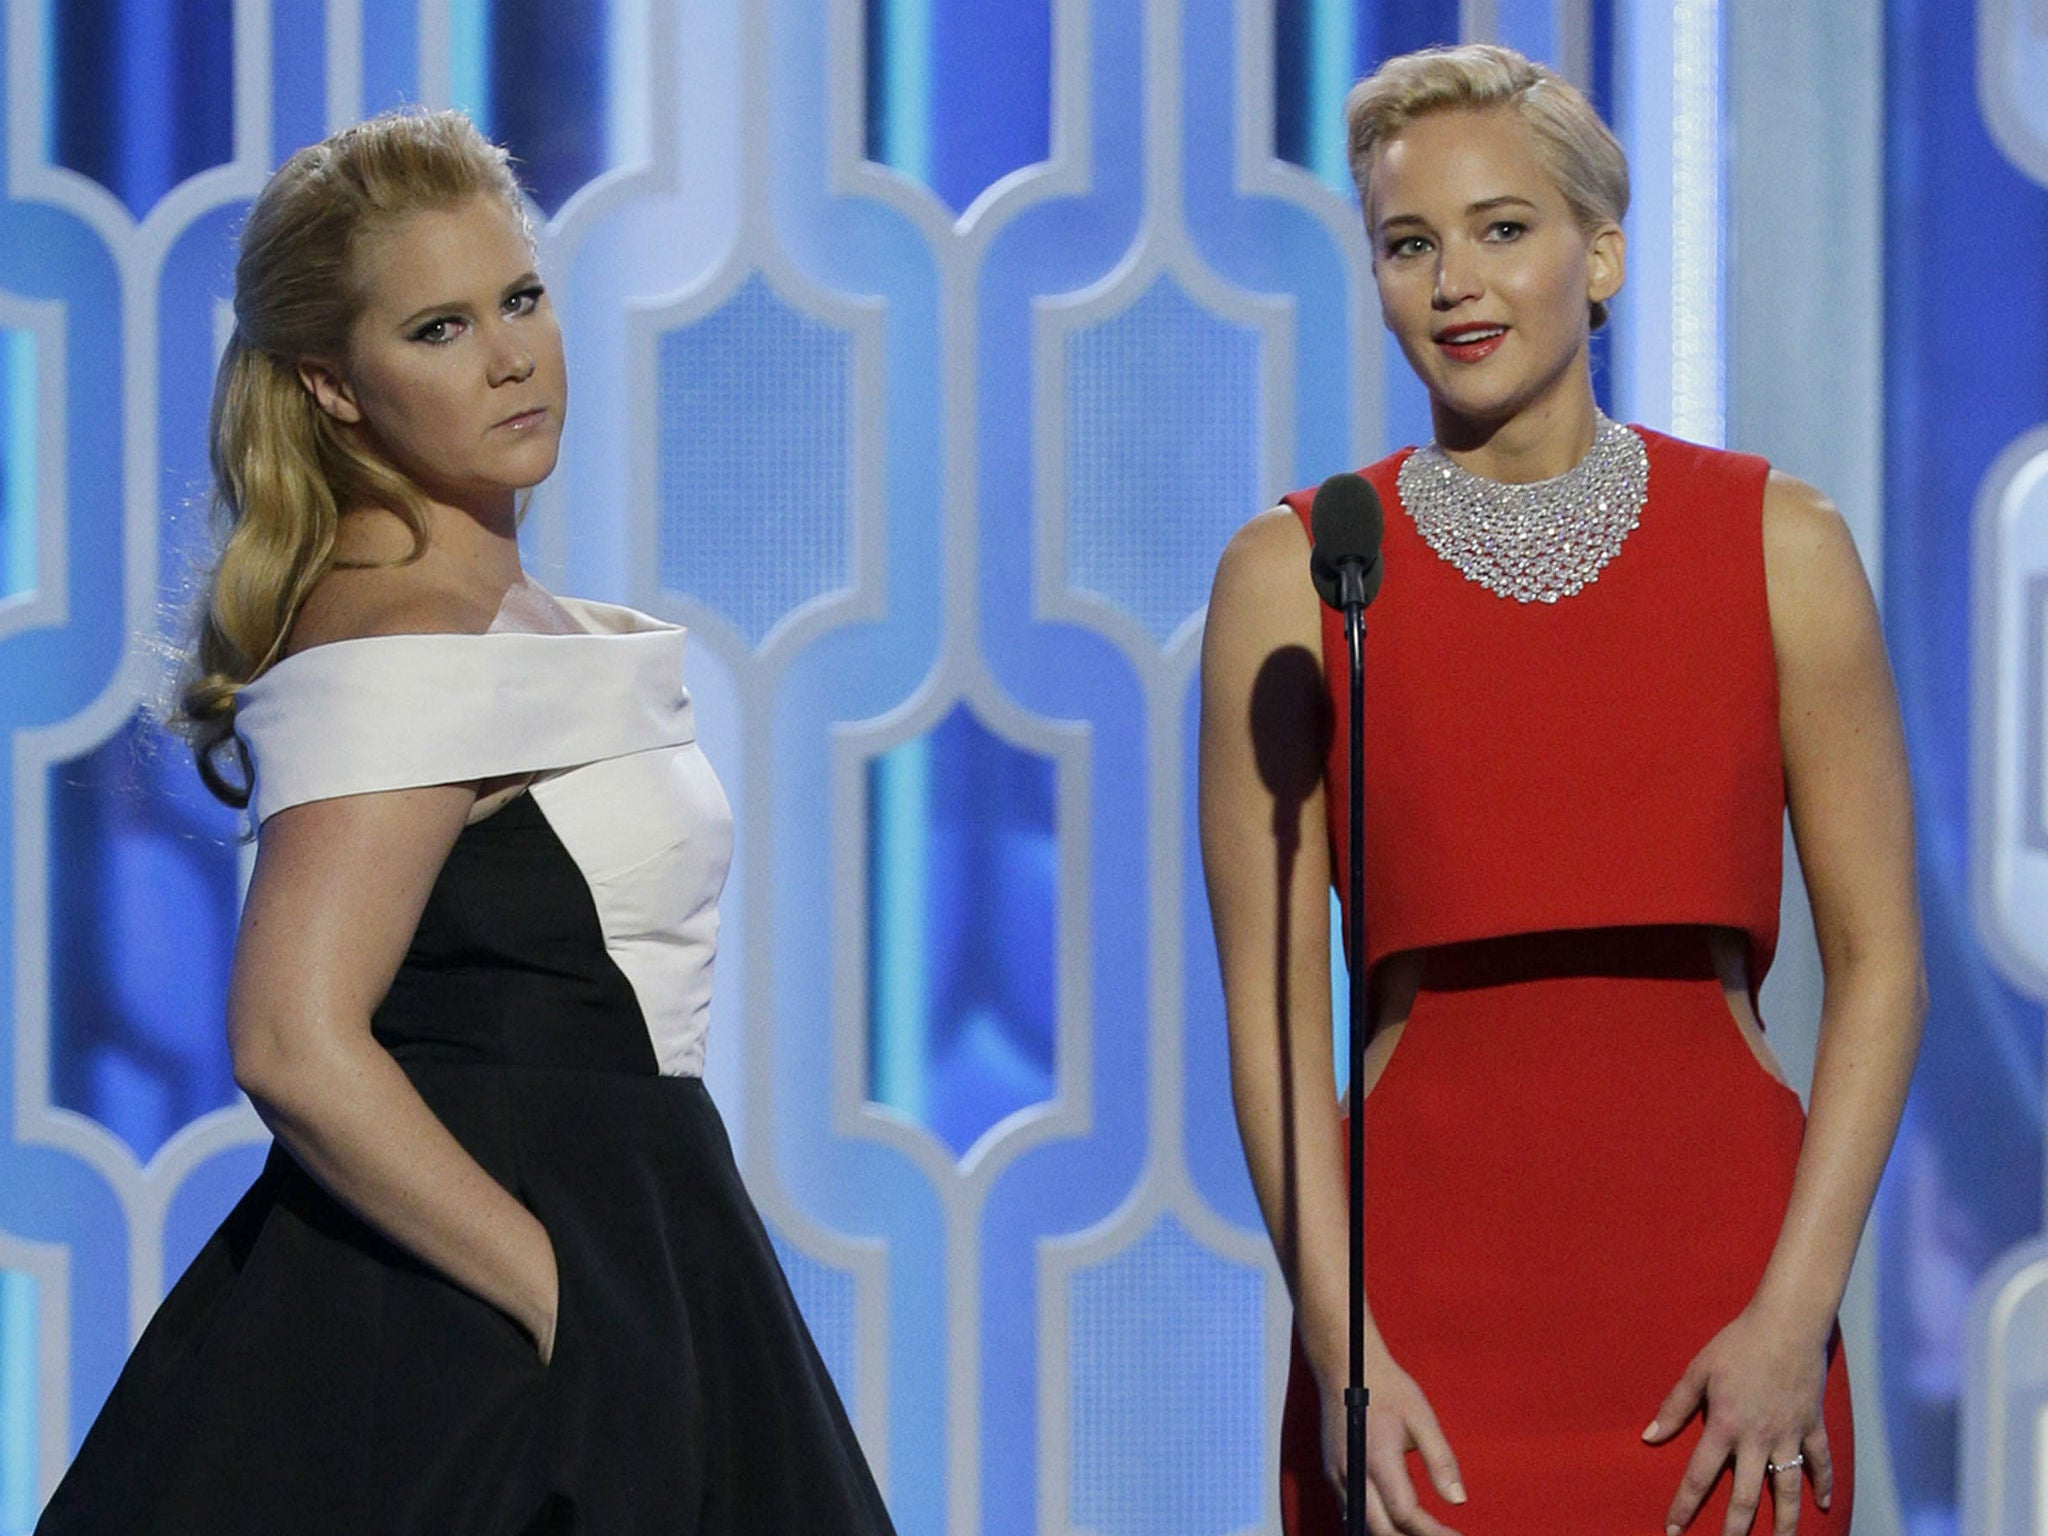 Amy Schumer 'fact checks' Jennifer Lawrence interview